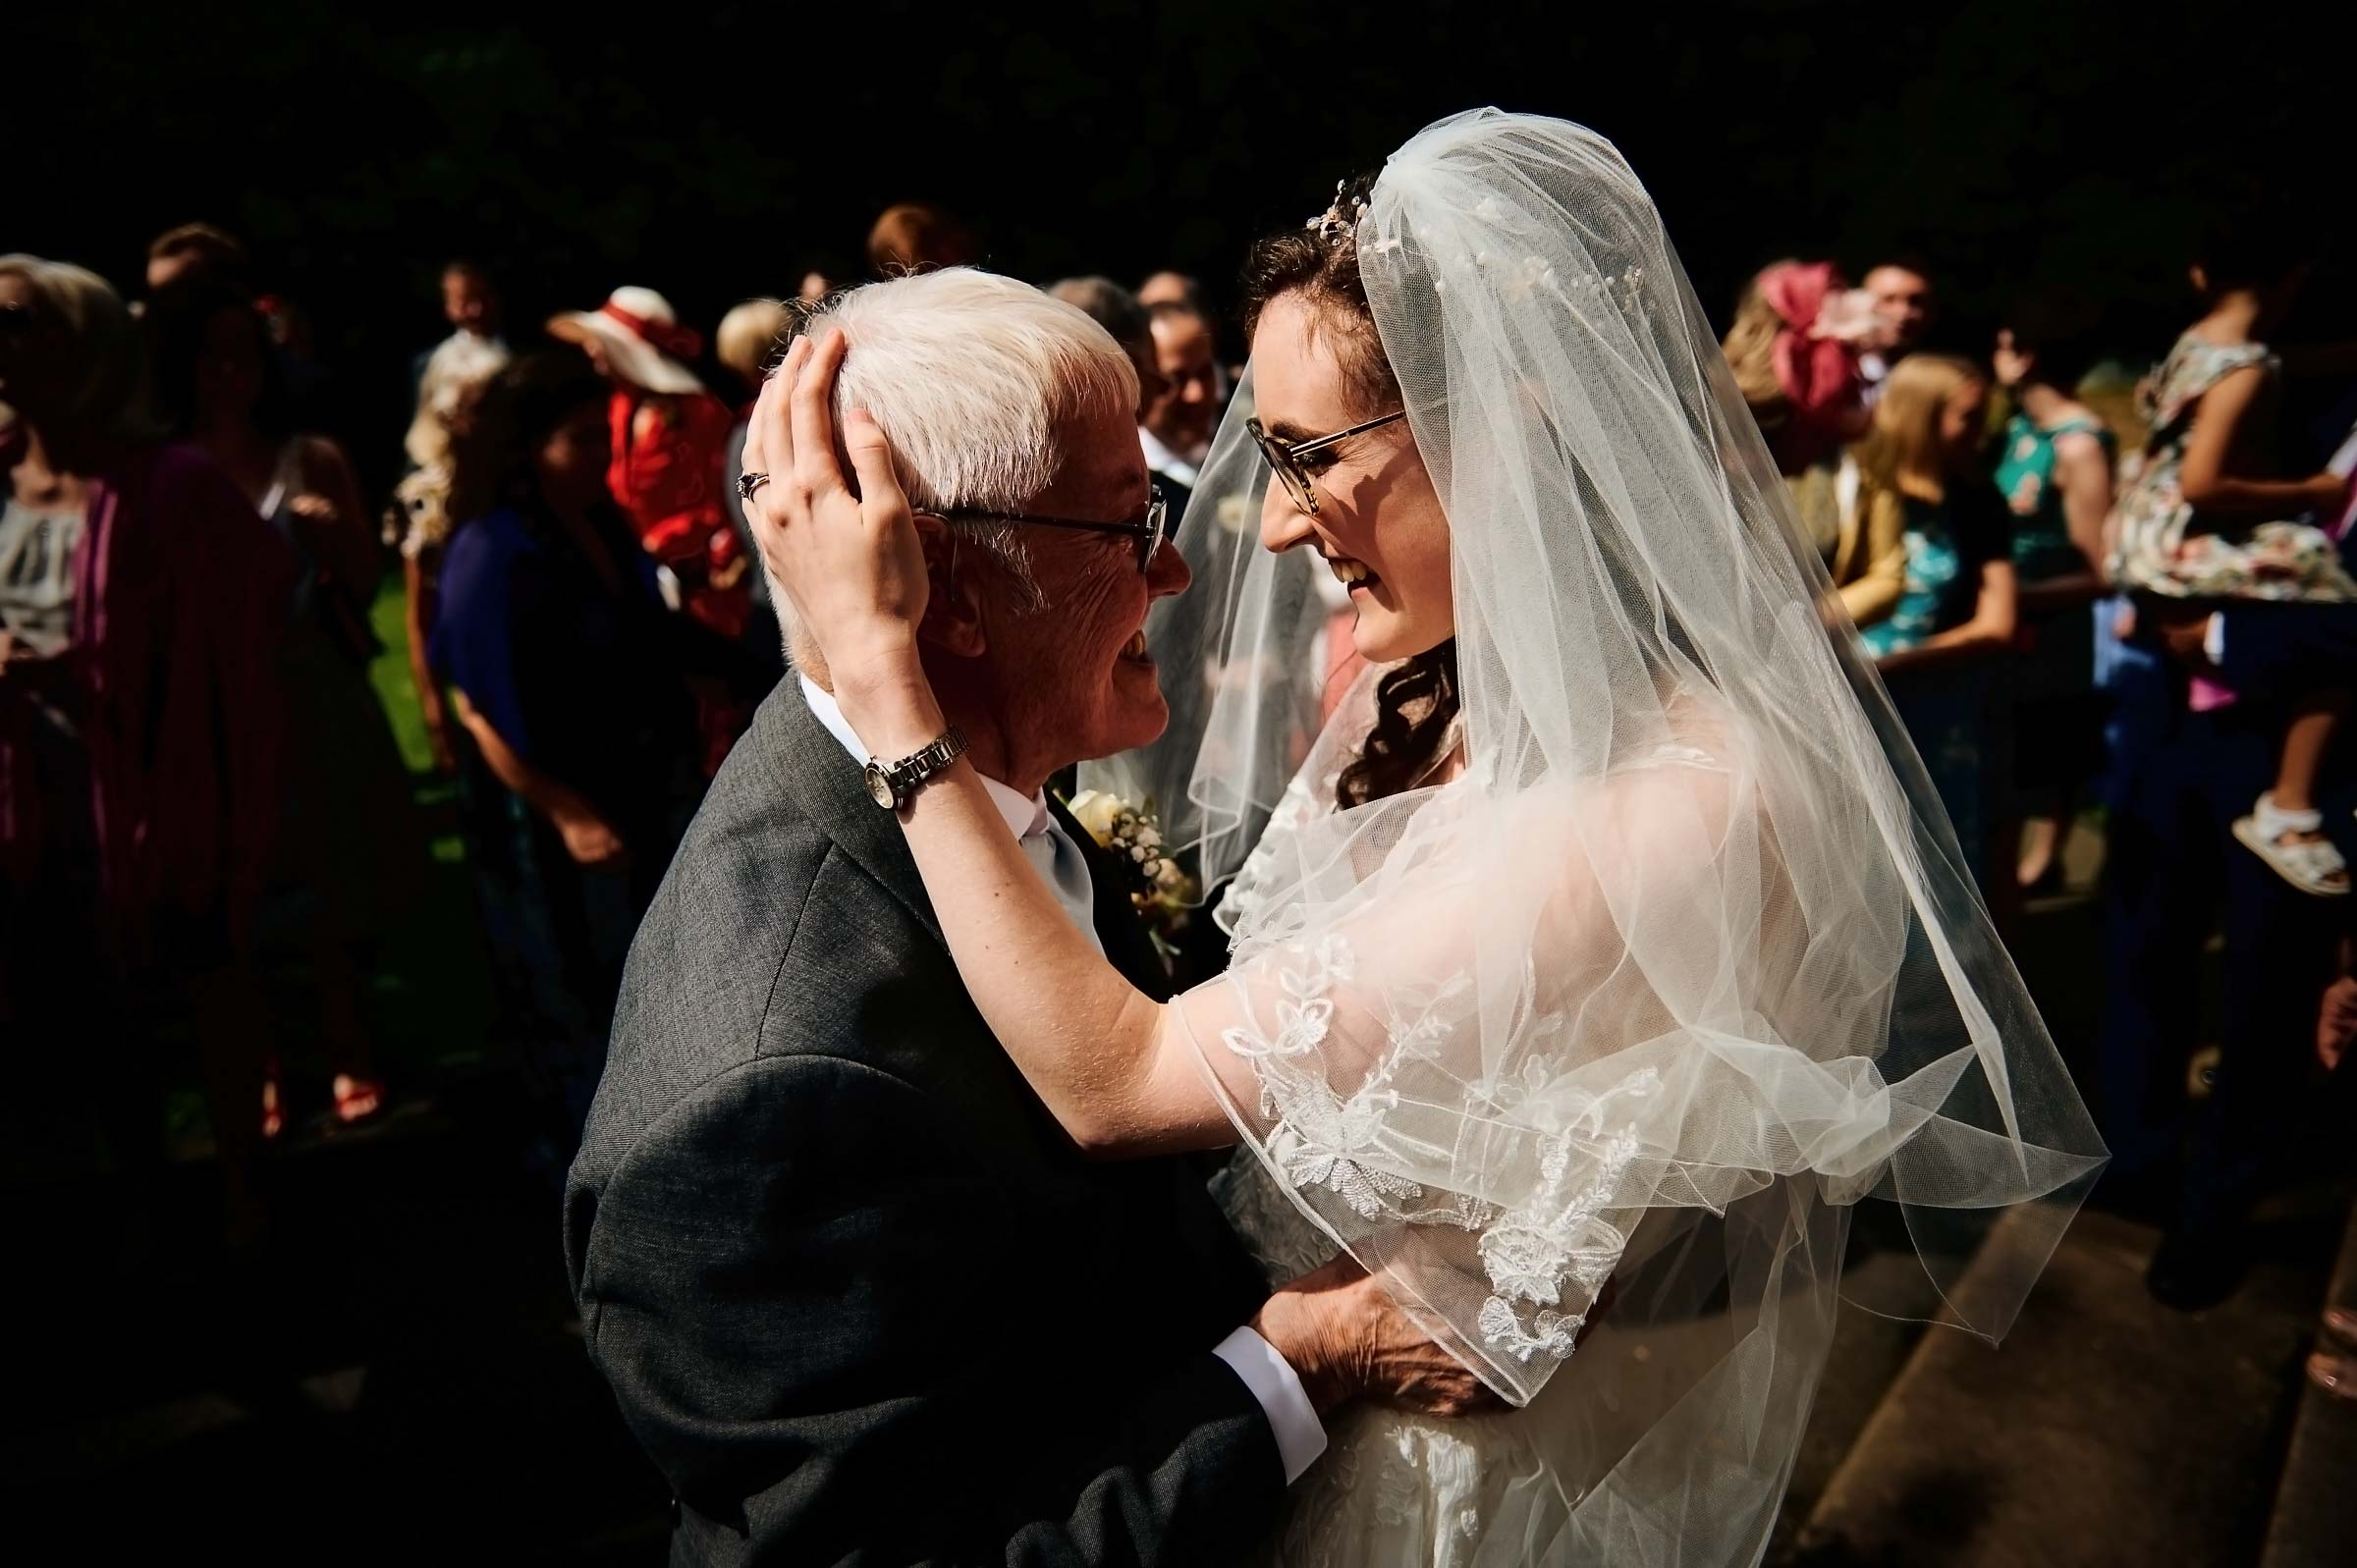 Bride hugs grandfather after wedding ceremony